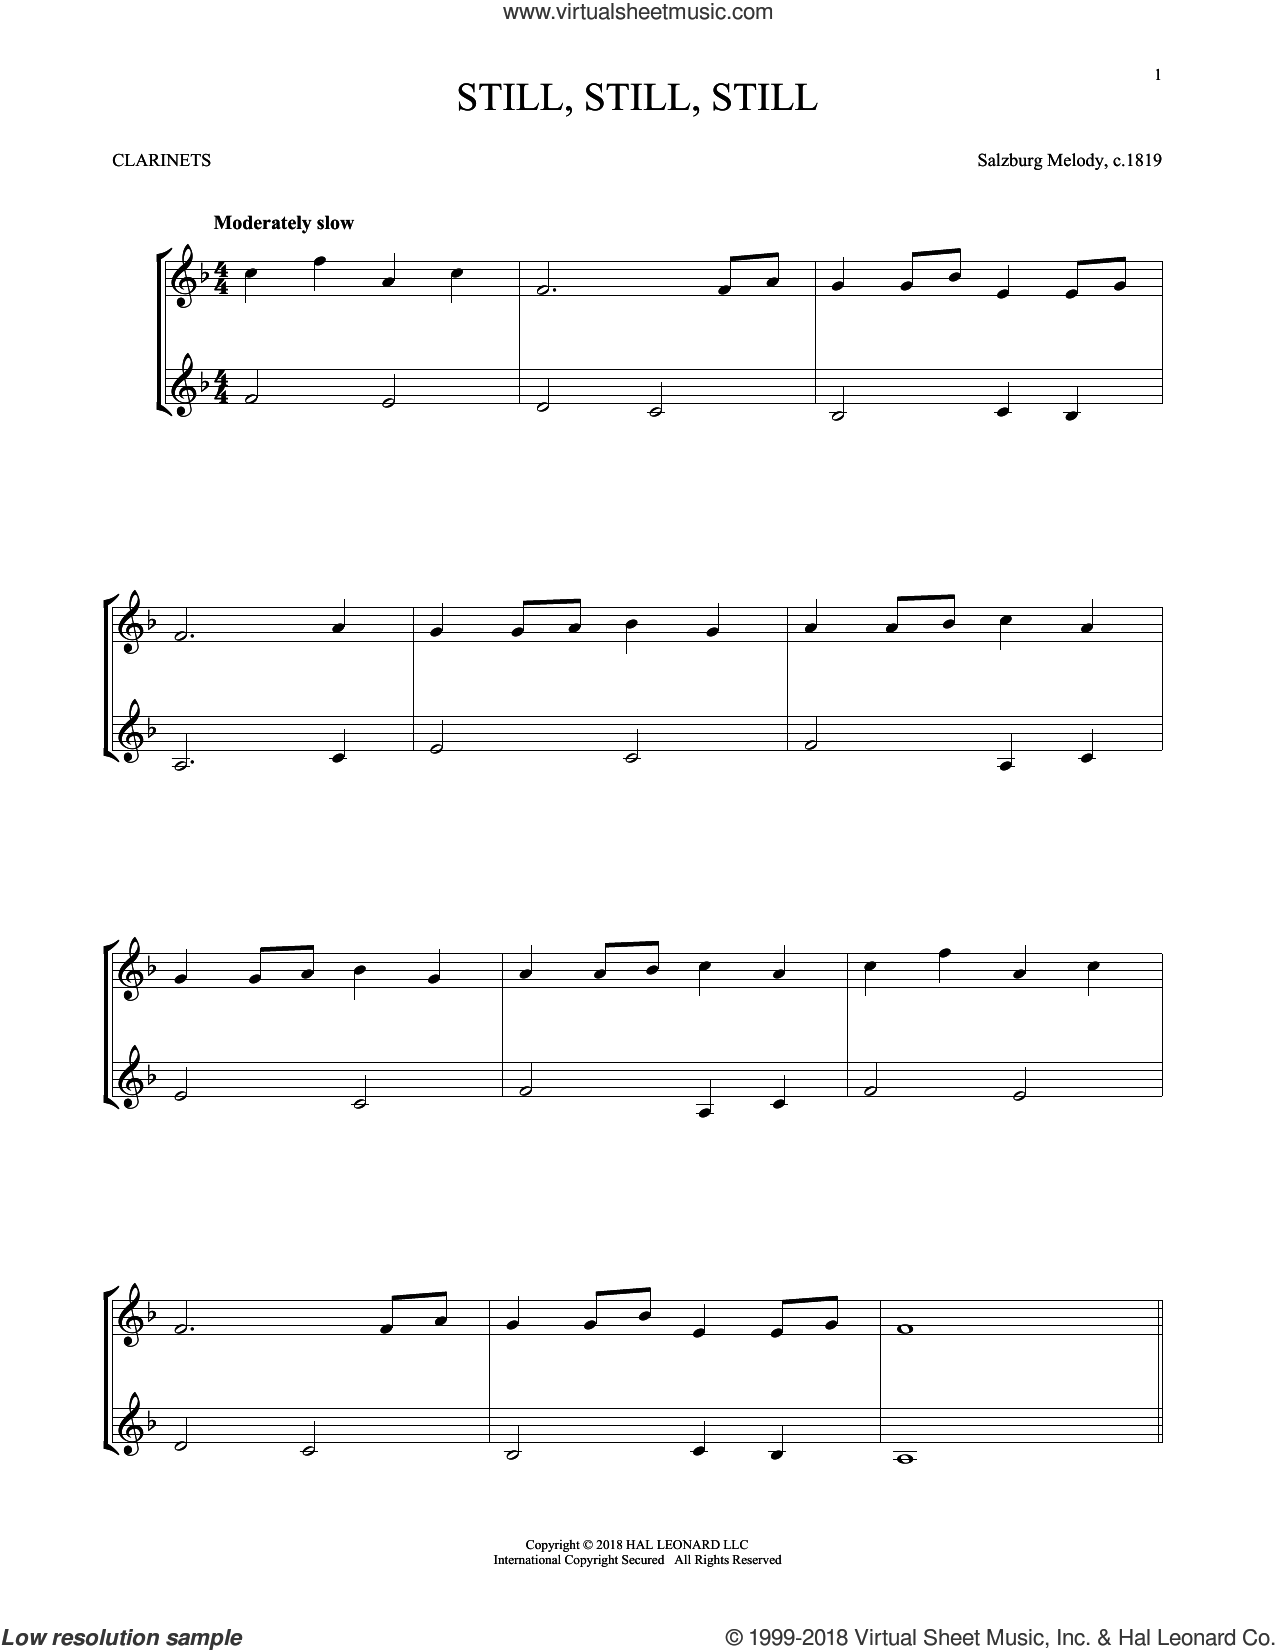 Still, Still, Still sheet music for two clarinets (duets) by Salzburg Melody c.1819, Mark Phillips and Miscellaneous, intermediate skill level